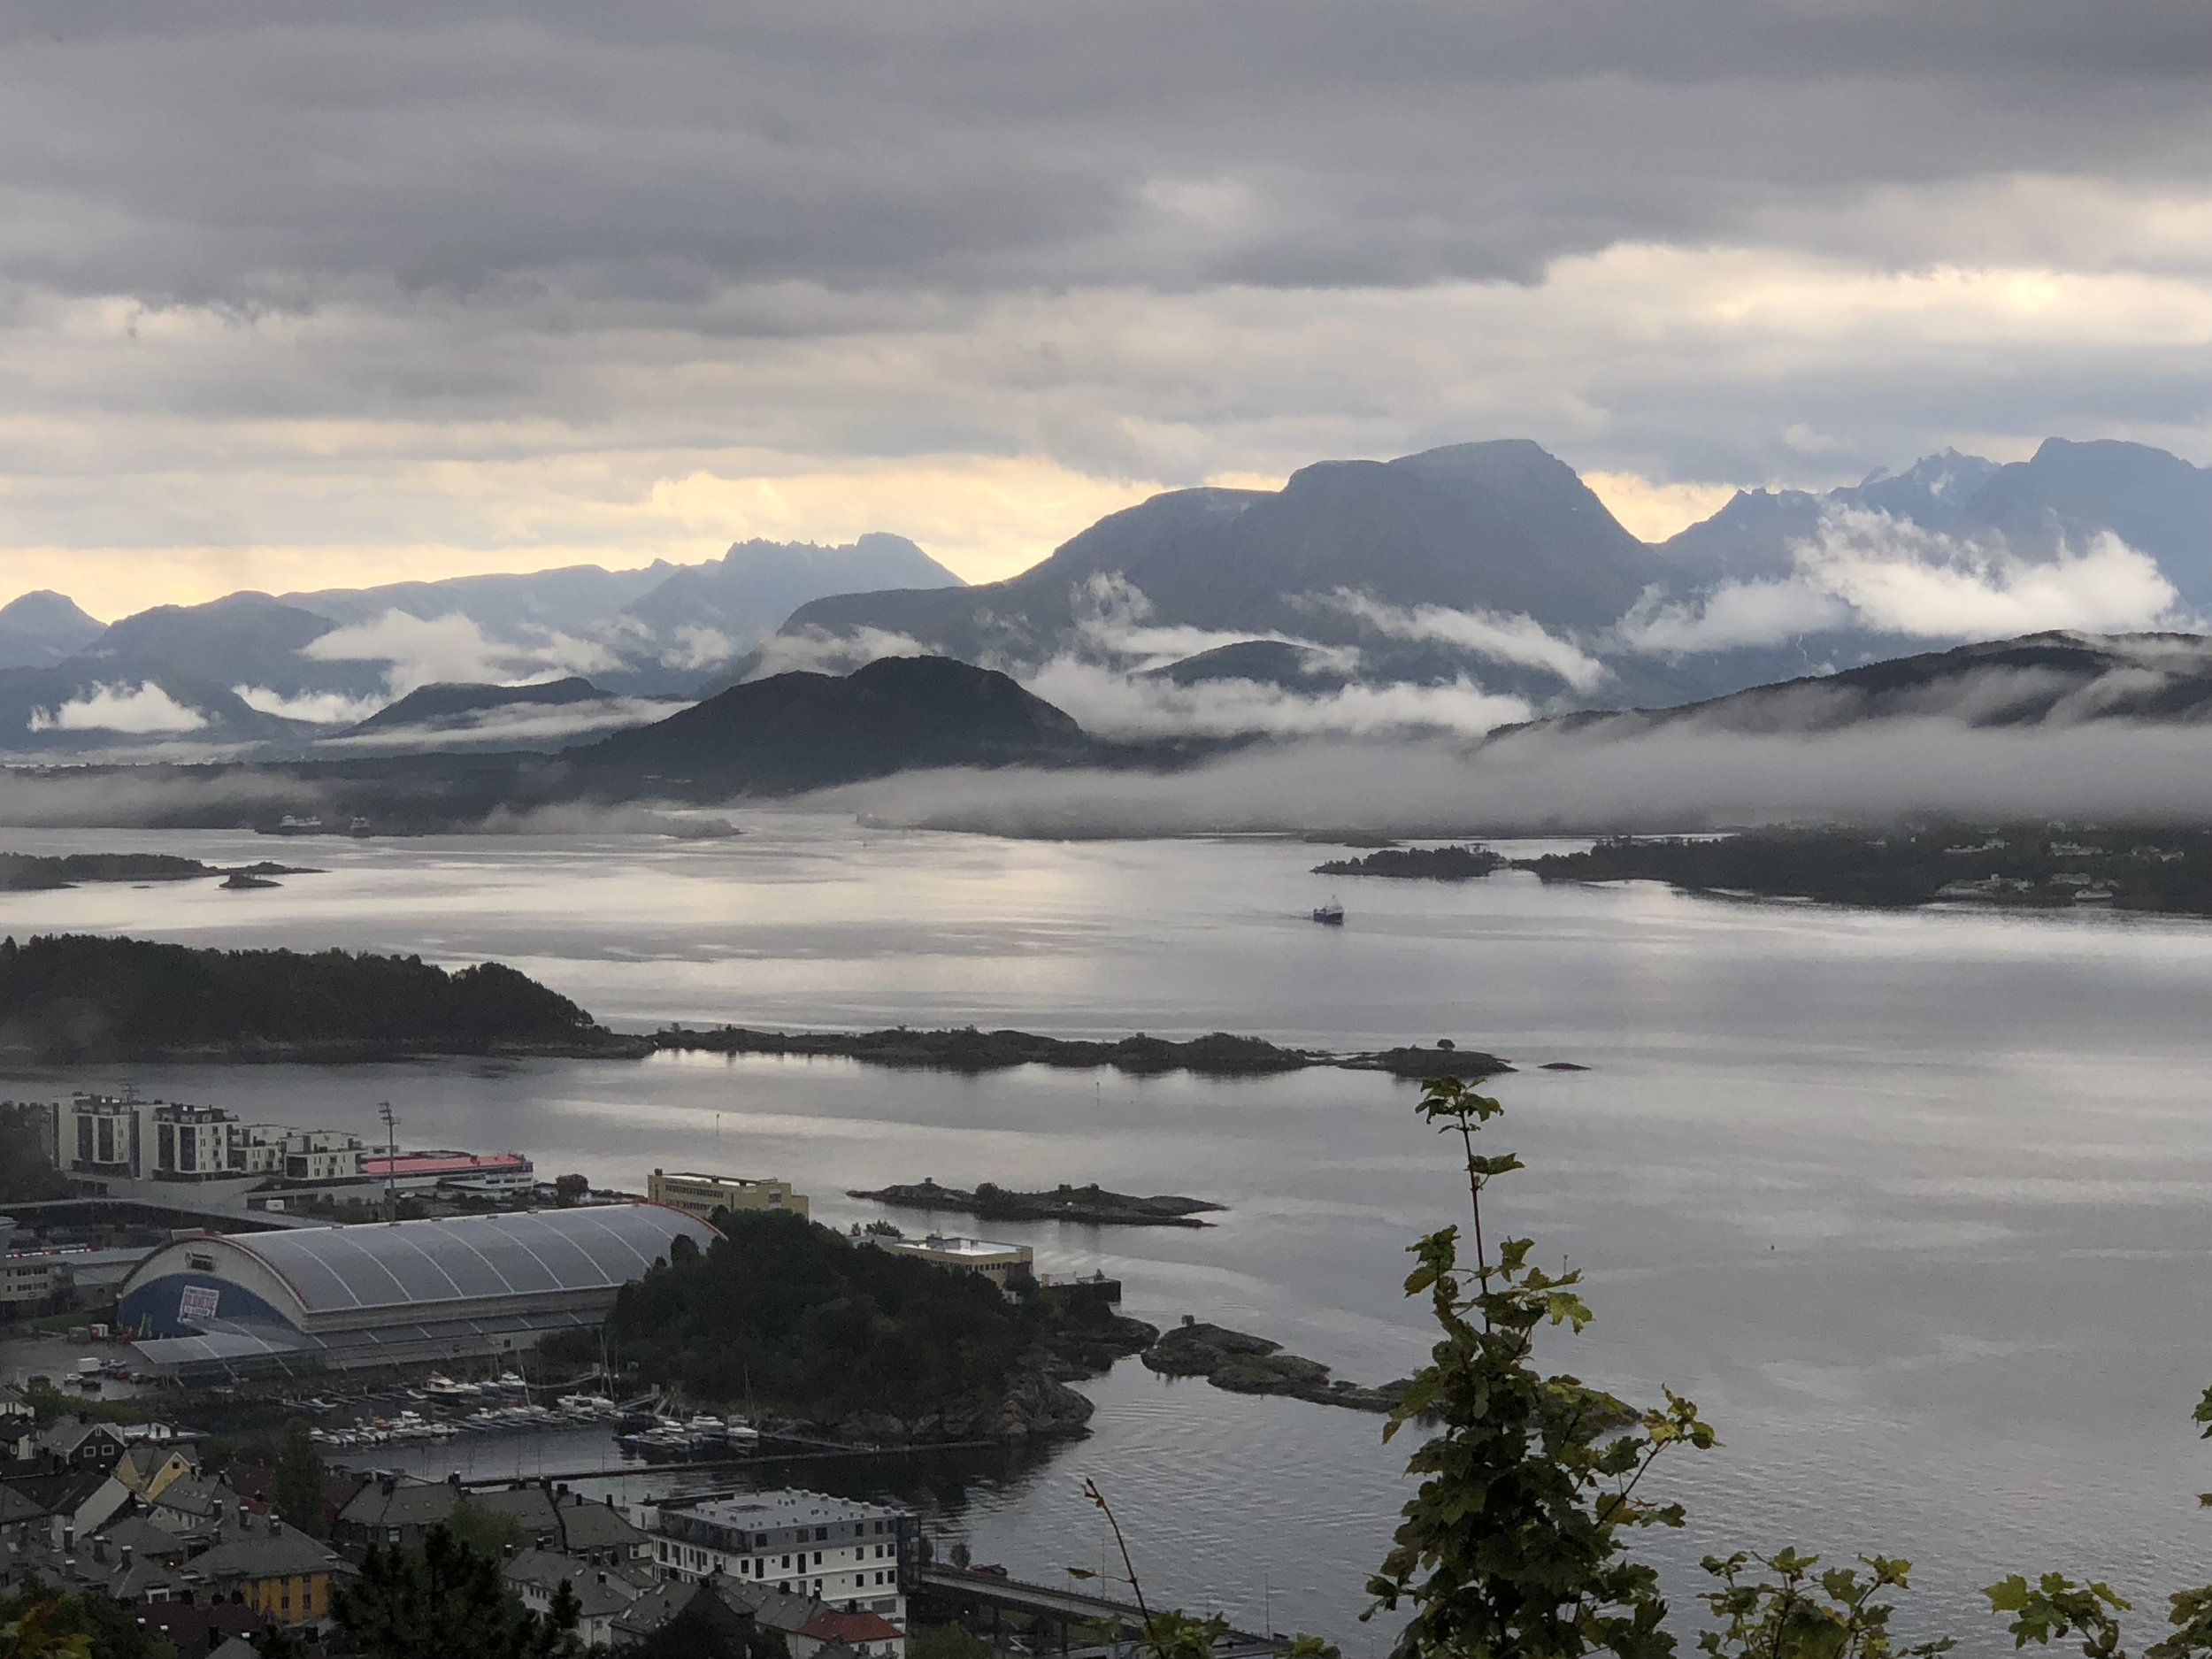 Beautiful Norway. Home to only 5 million people, less than London.